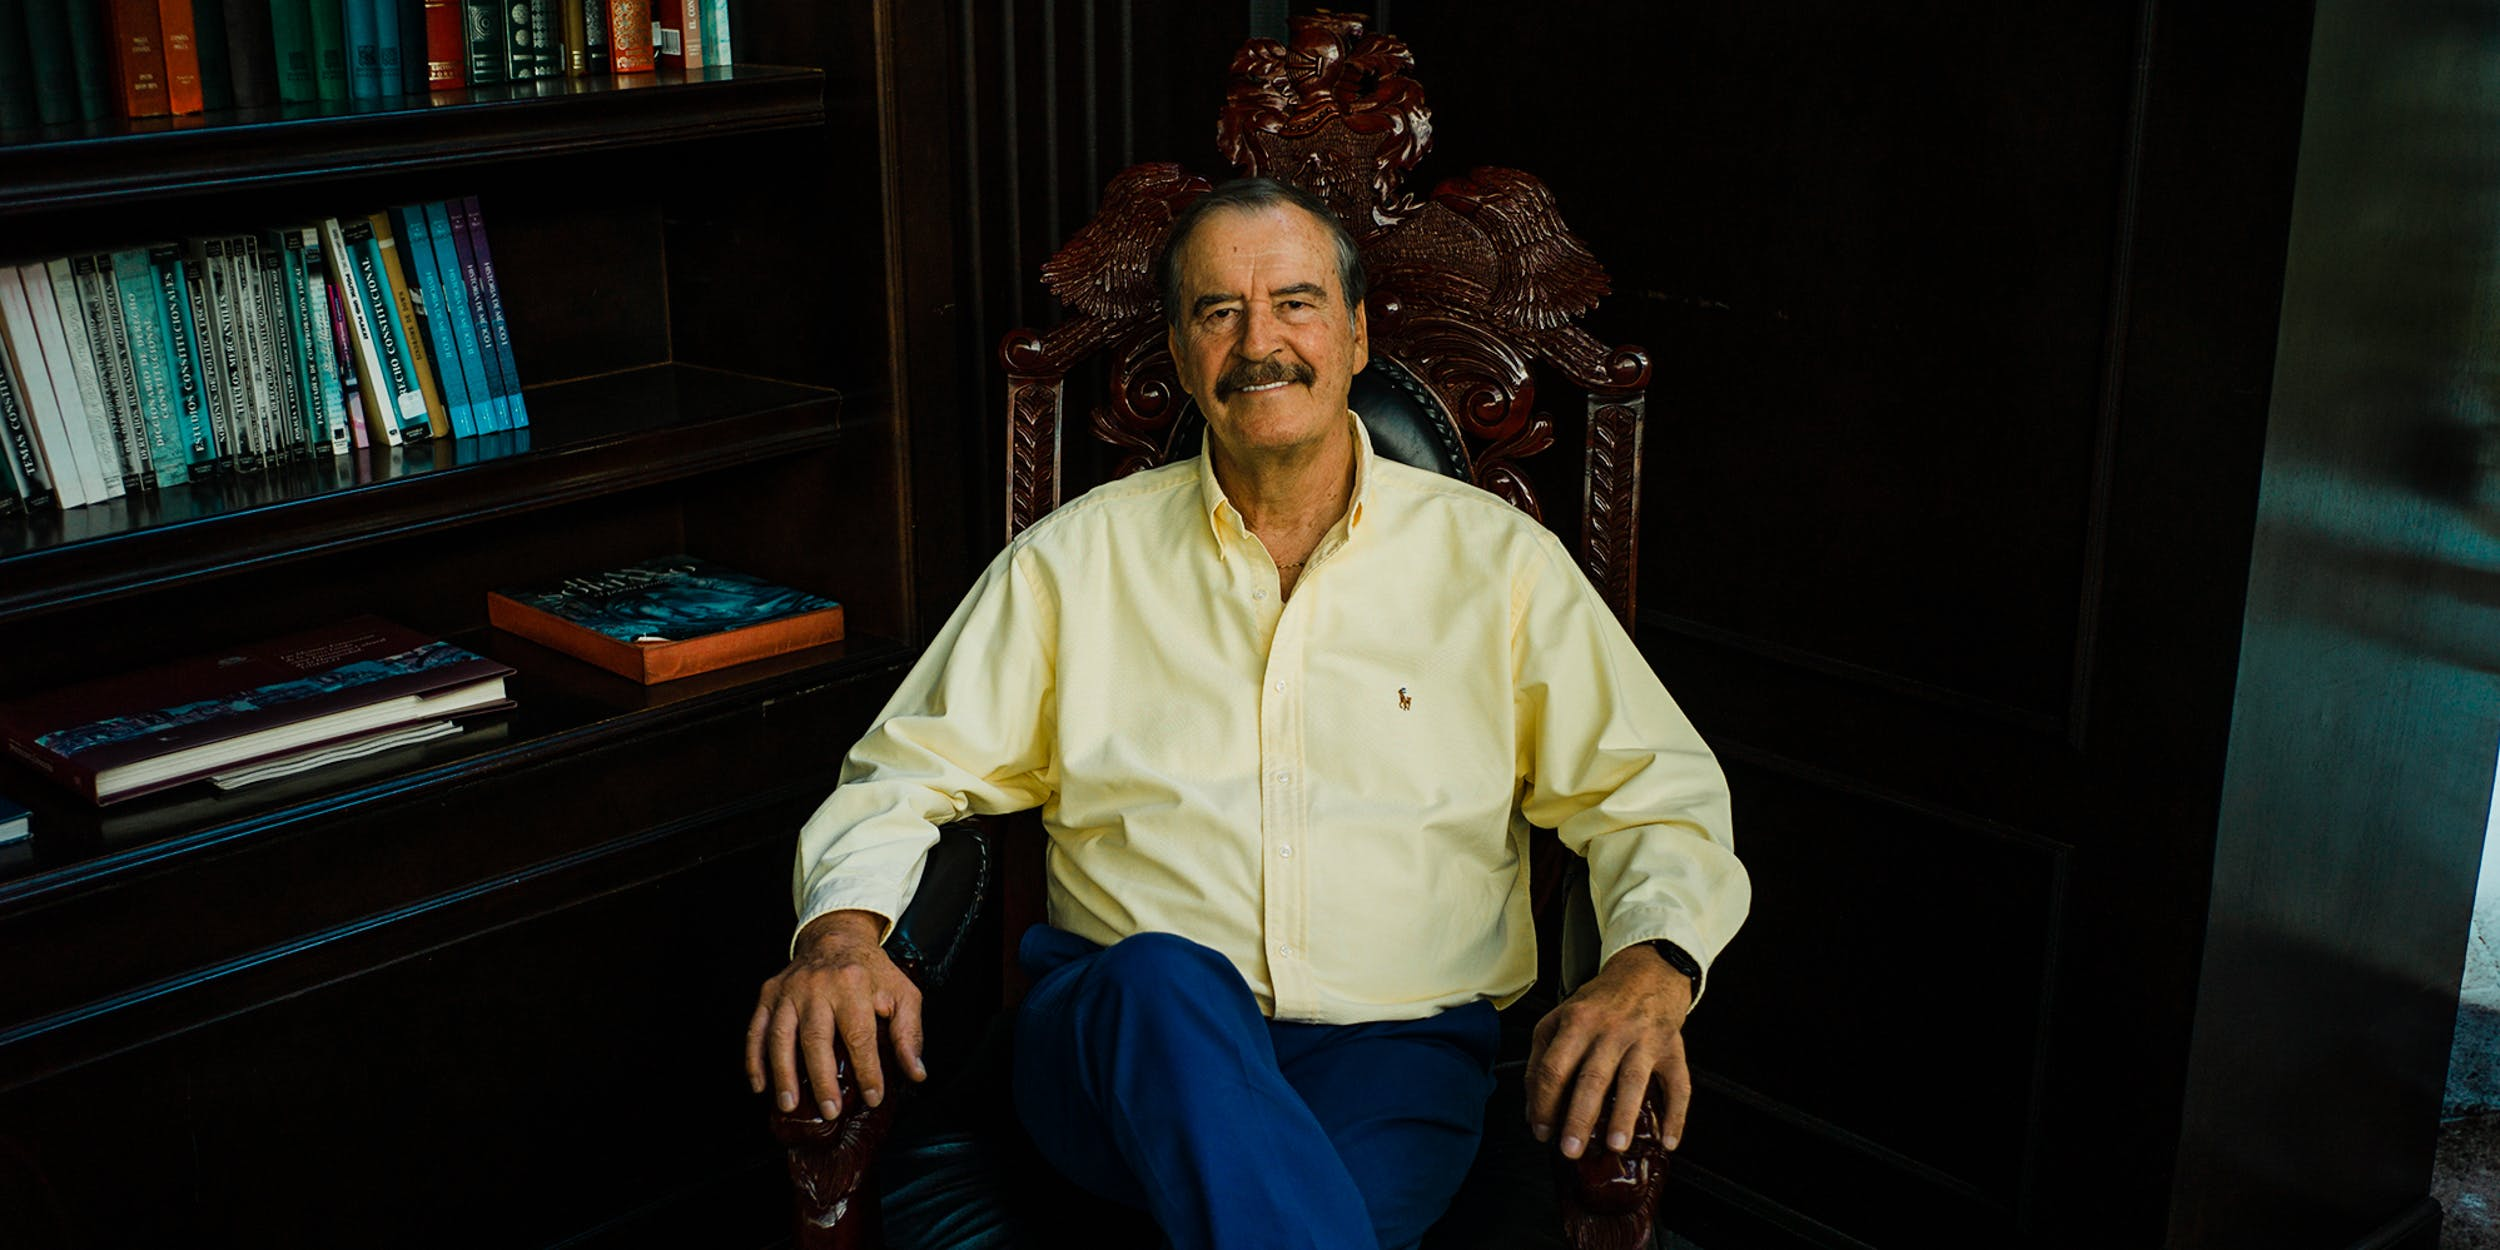 Former president of Mexico Vicente Fox explains why he thinks marijuana should be legal in Mexico. Here, he is seen at his educational center called Centro Fox in his replica presidential office in Guanajuato, Mexico. (Photo by Scott Brennan for Herb)